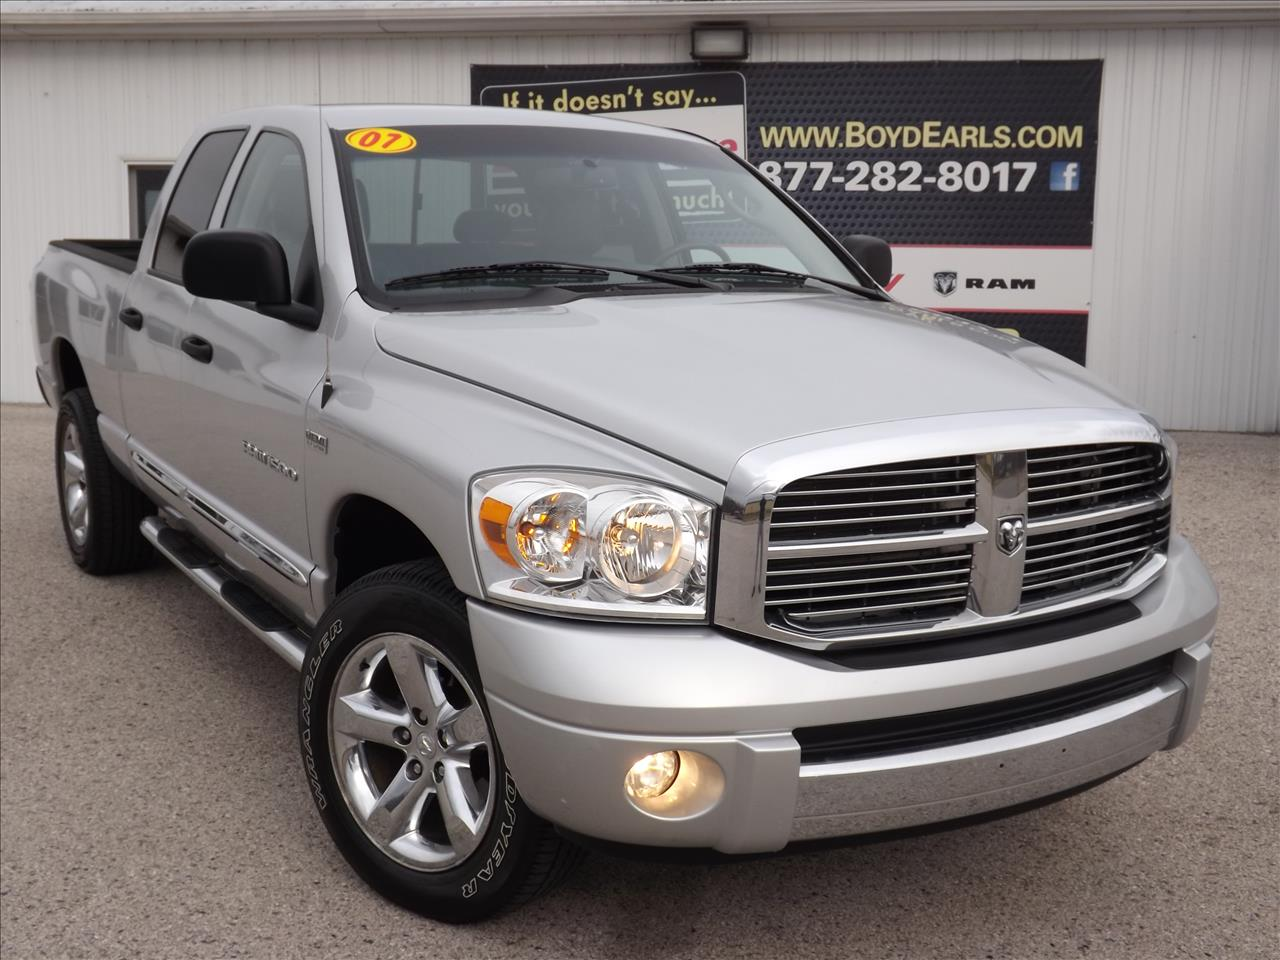 2007 dodge ram pickup 1500 for sale in michigan. Black Bedroom Furniture Sets. Home Design Ideas